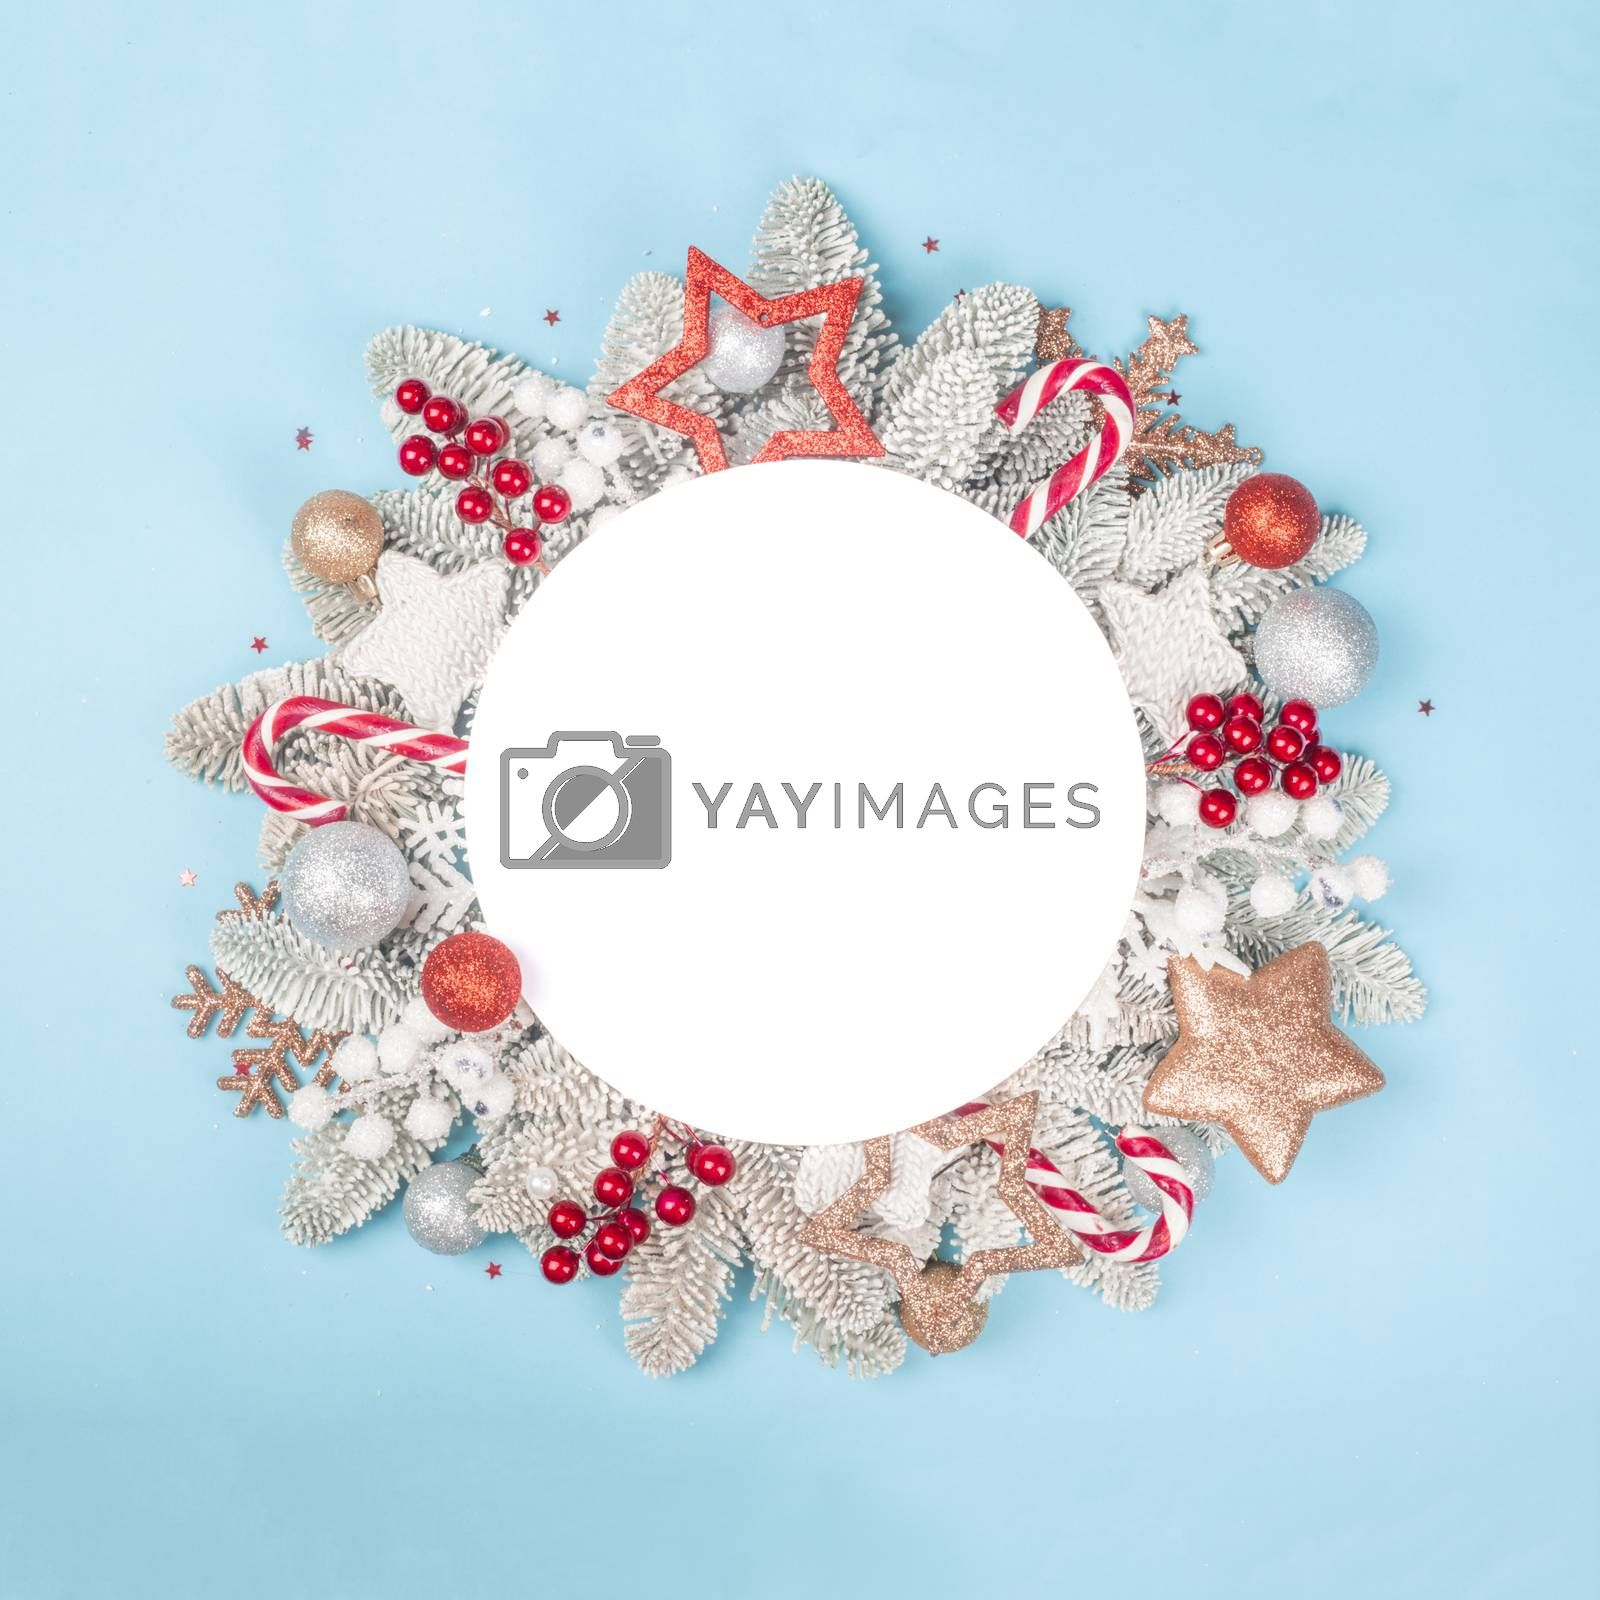 Frosted fir tree twigs and Christmas decorative bauble balls on blue background with white circle card with copy space for text template flat lay top view design